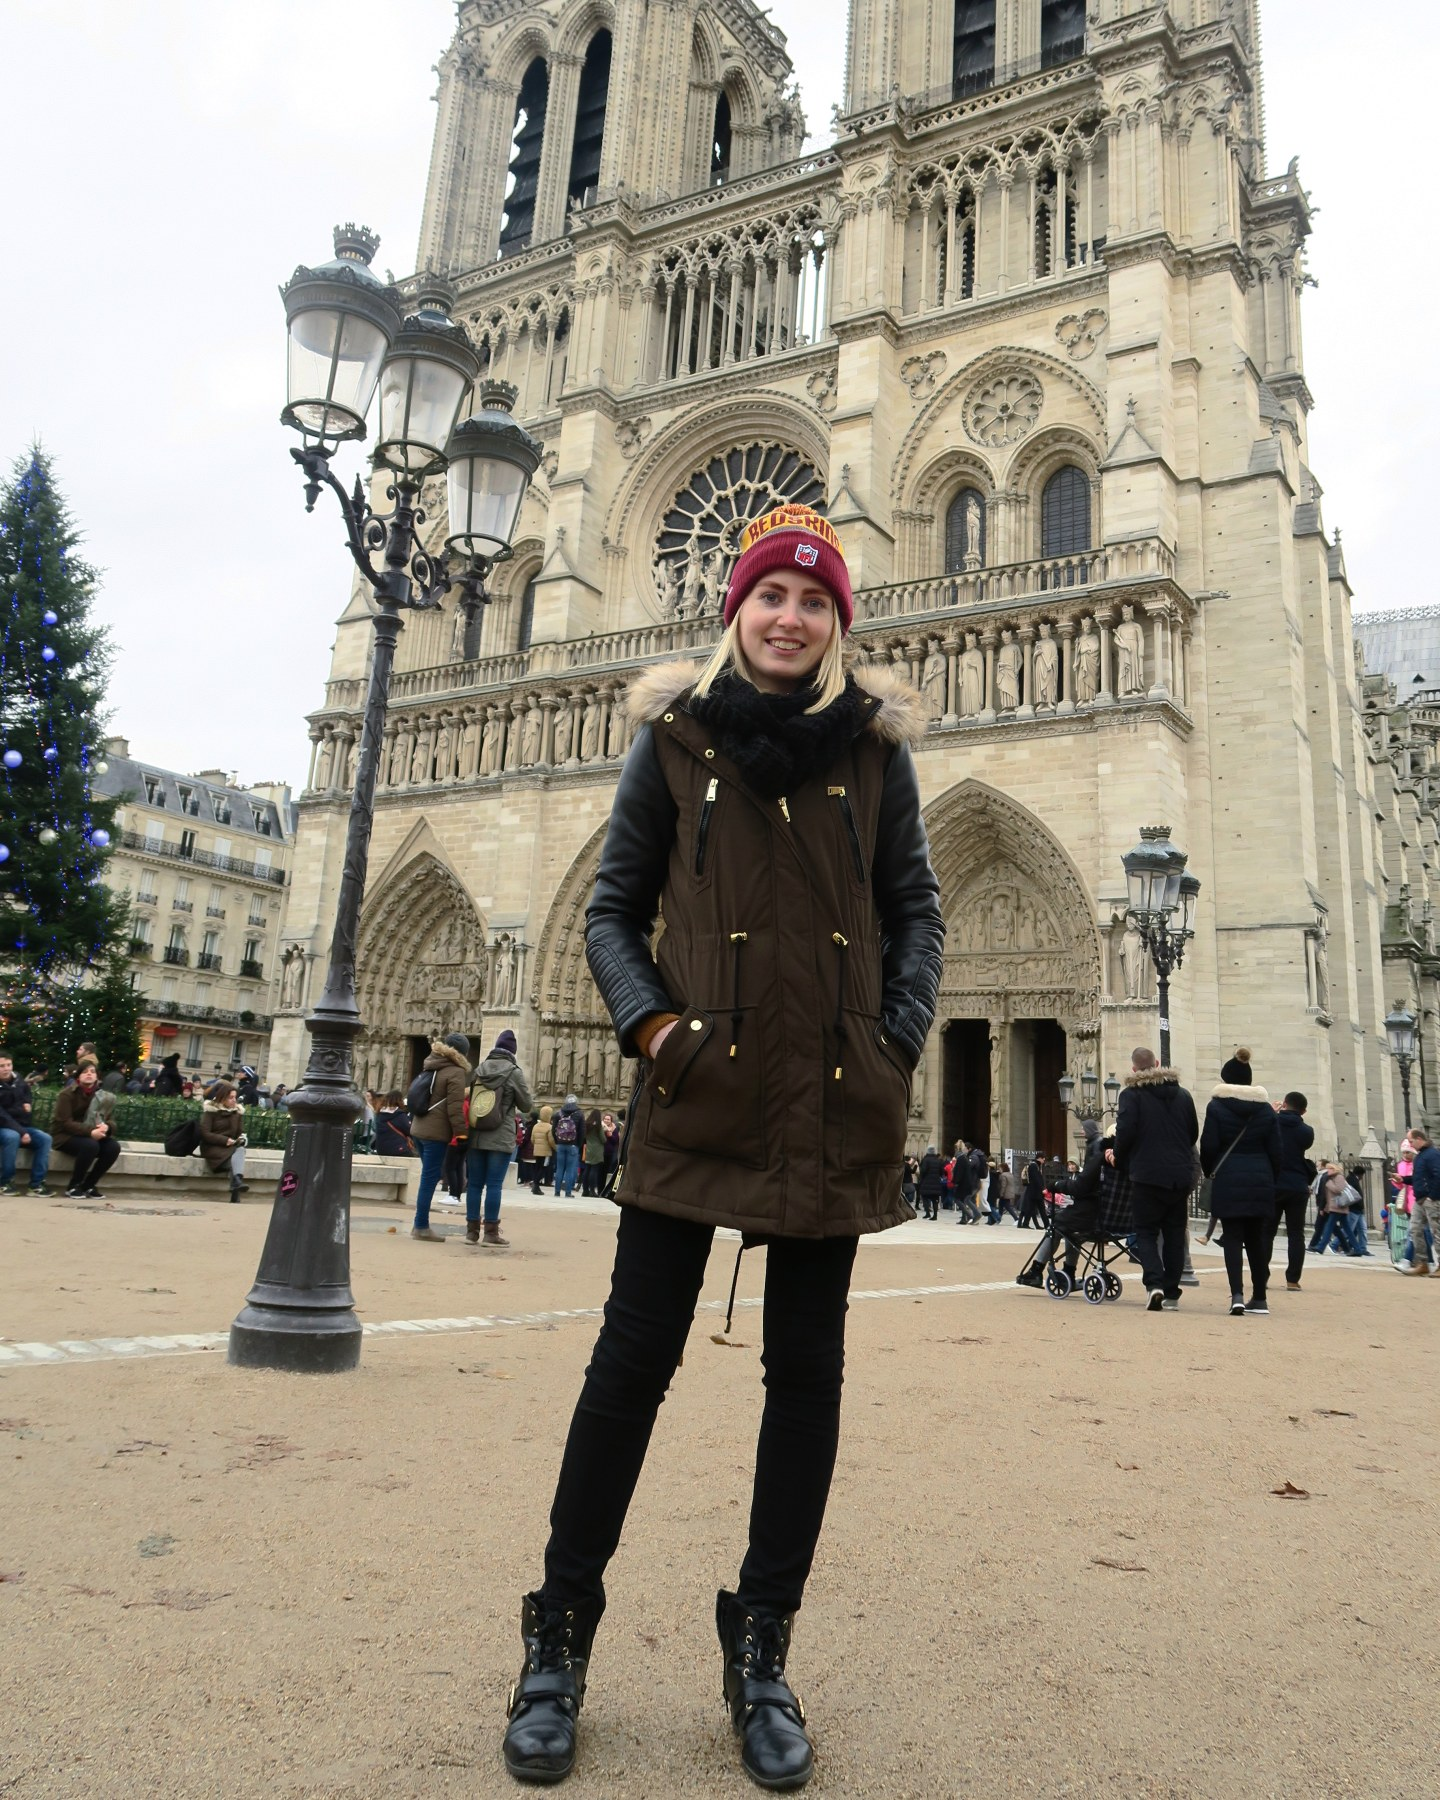 2 days in Paris - notre dame